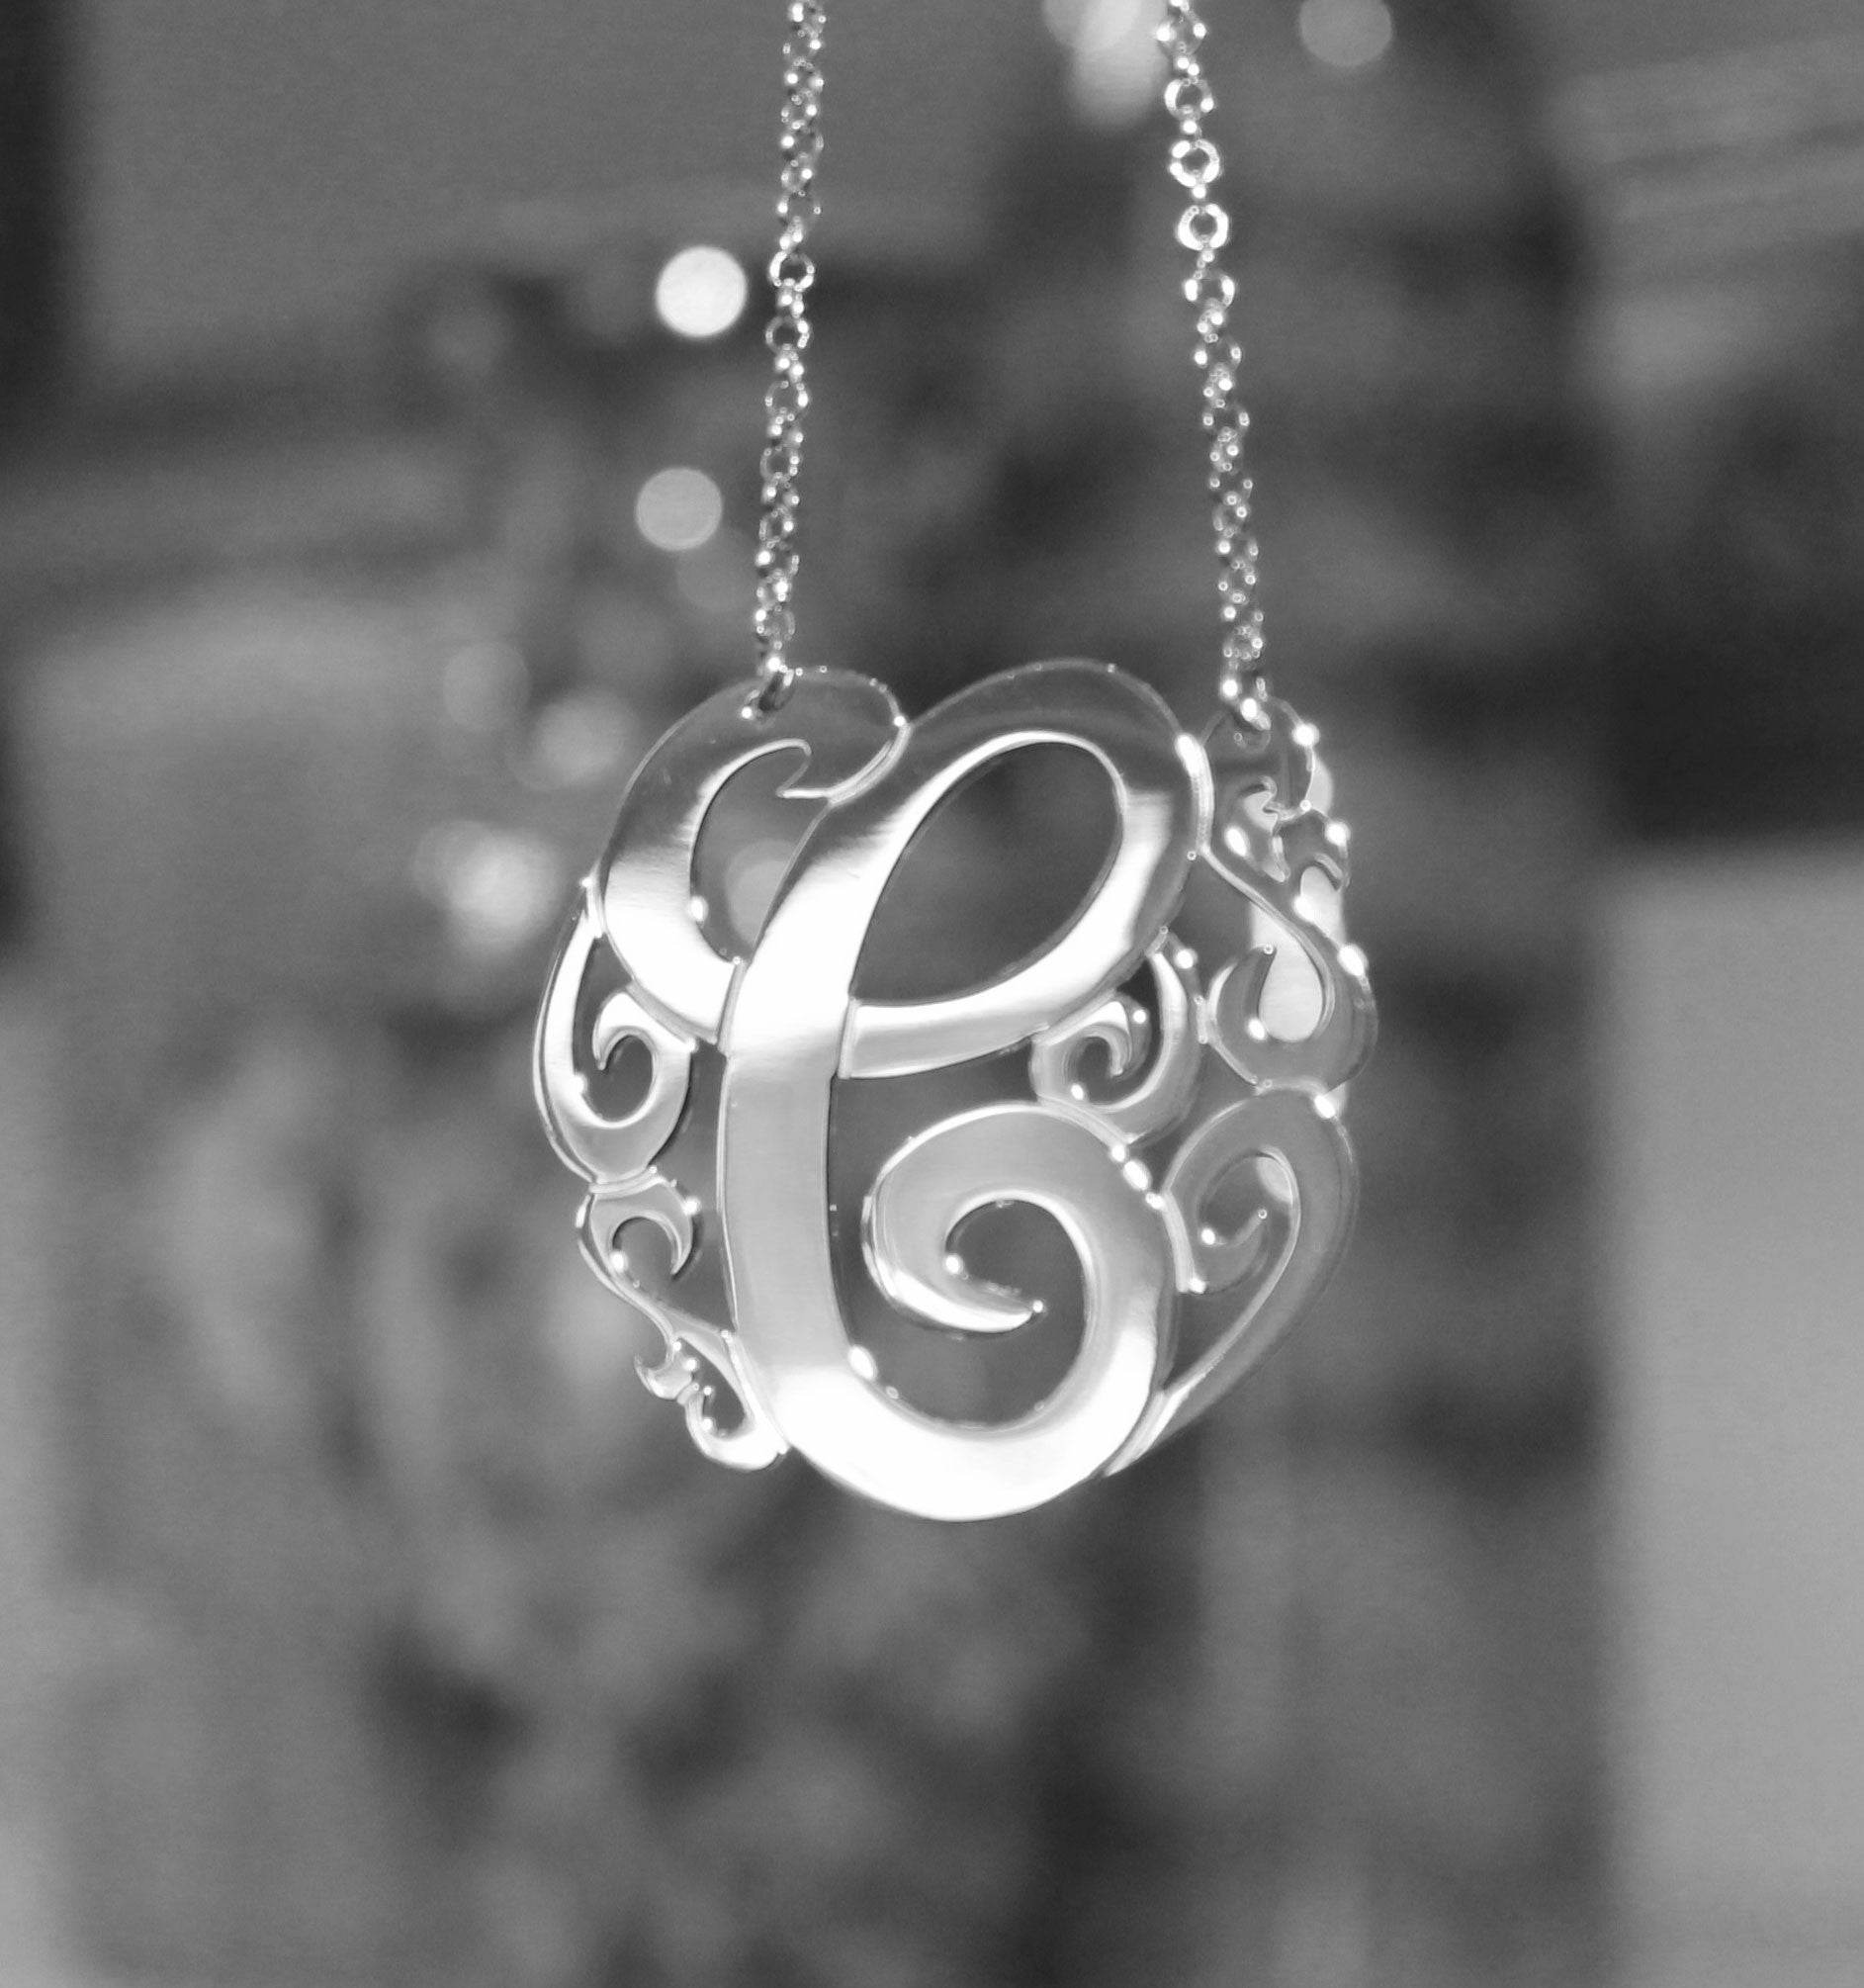 Swirly Initial Necklace - 1 1/2 inch